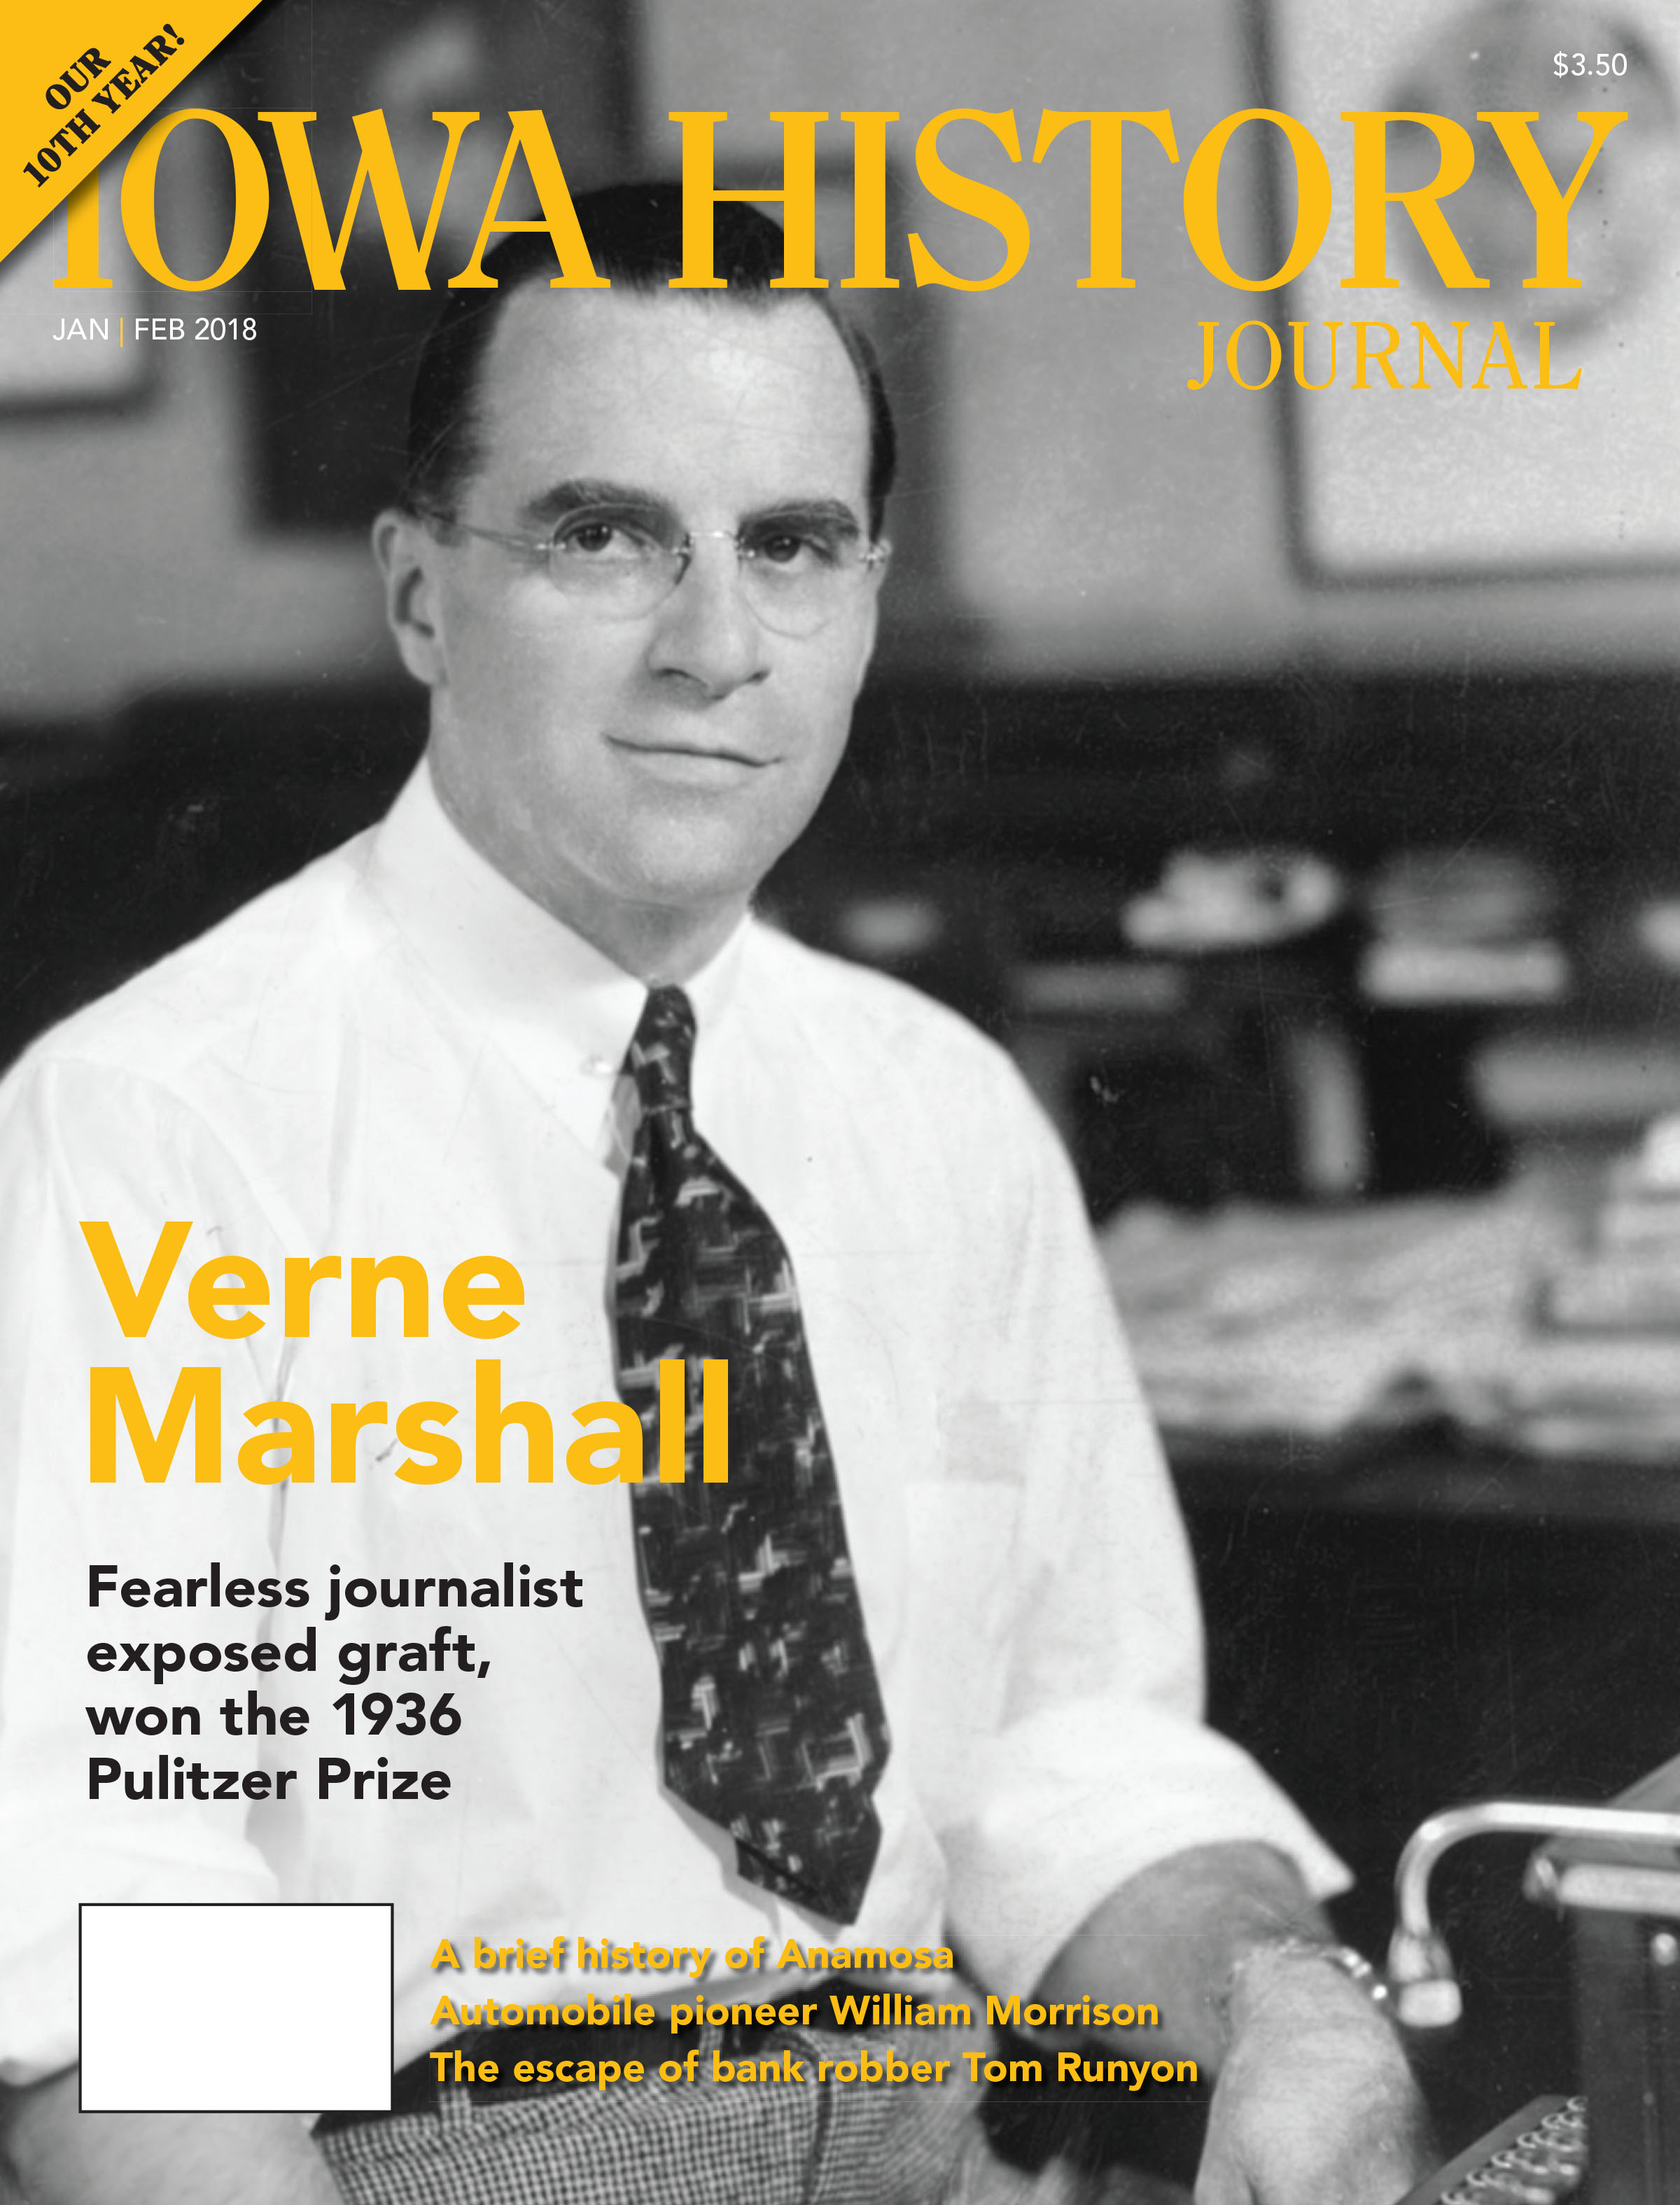 Current Issue: Volume 10, Issue 1 - Verne Marshall